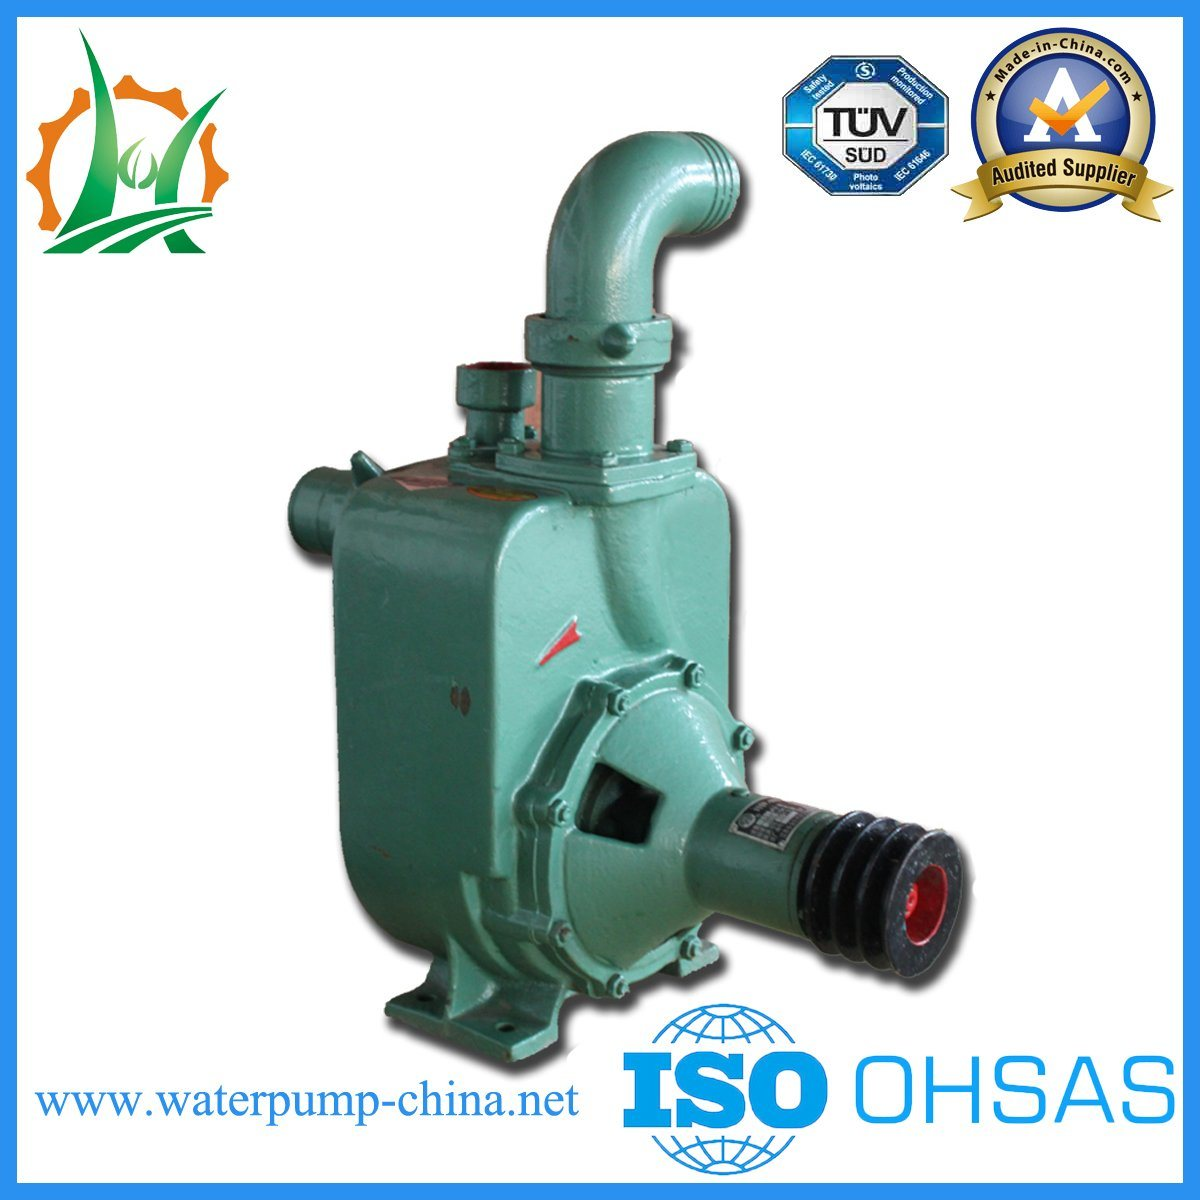 Agricultural Spray Self Priming Pump Unit for Tea Garden Spraying